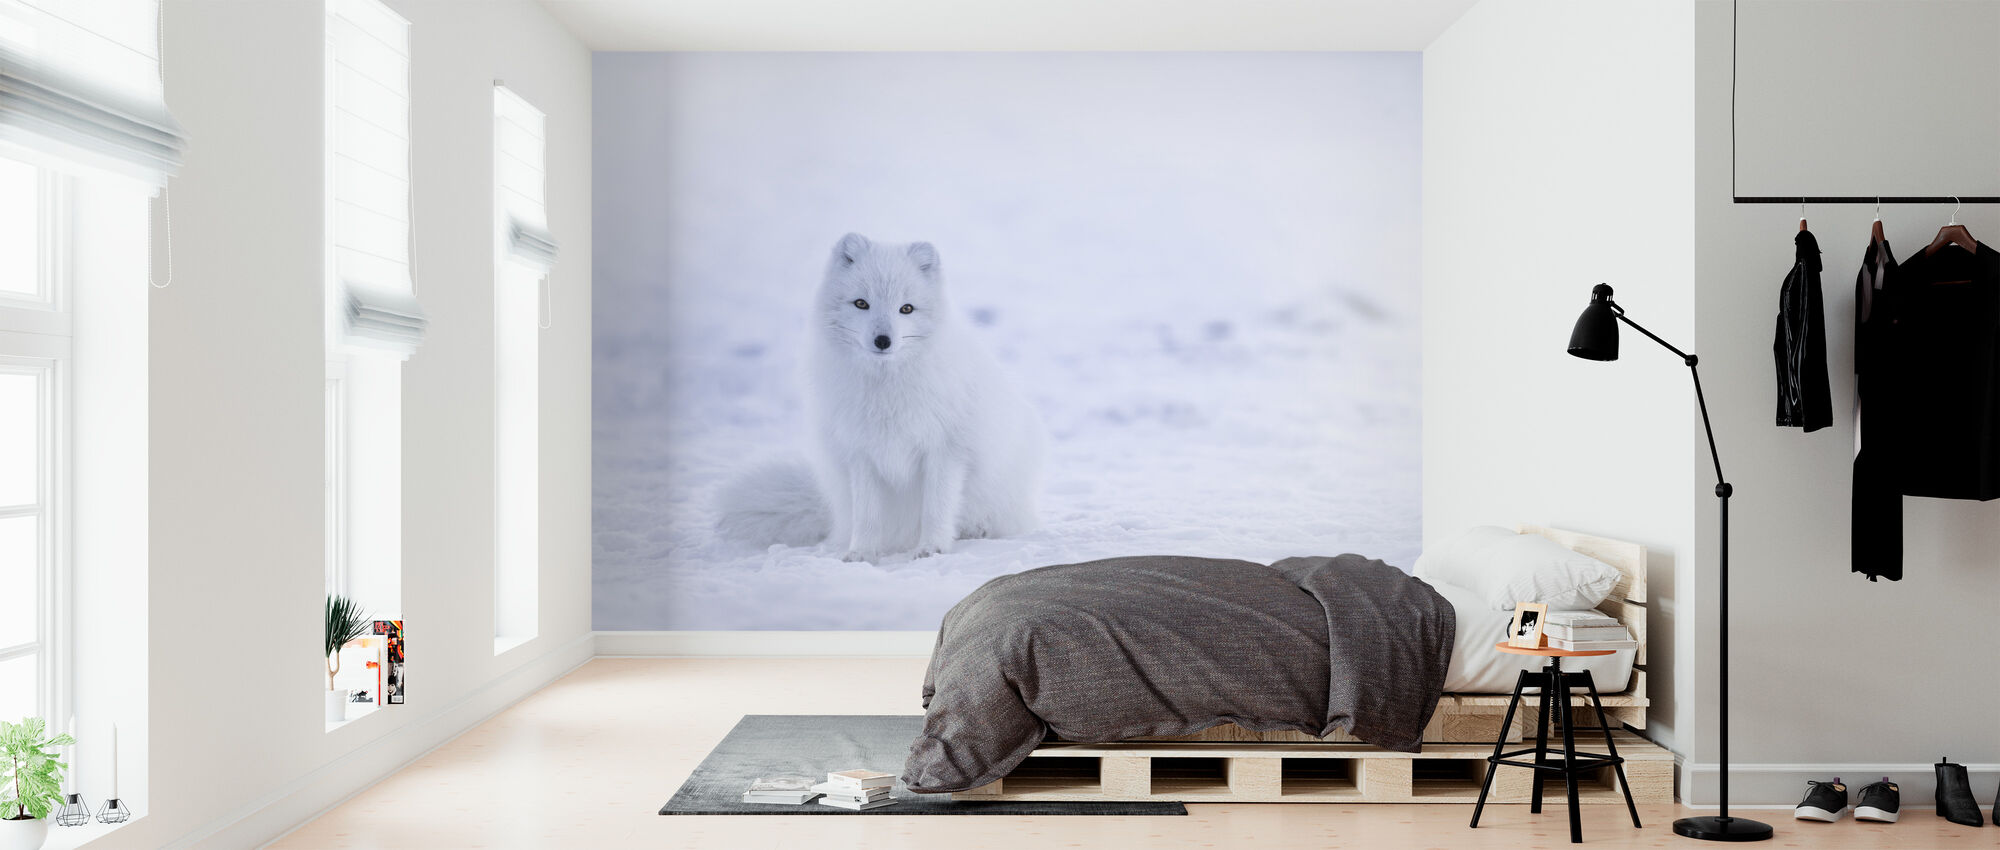 Artic Fox - Behang - Slaapkamer